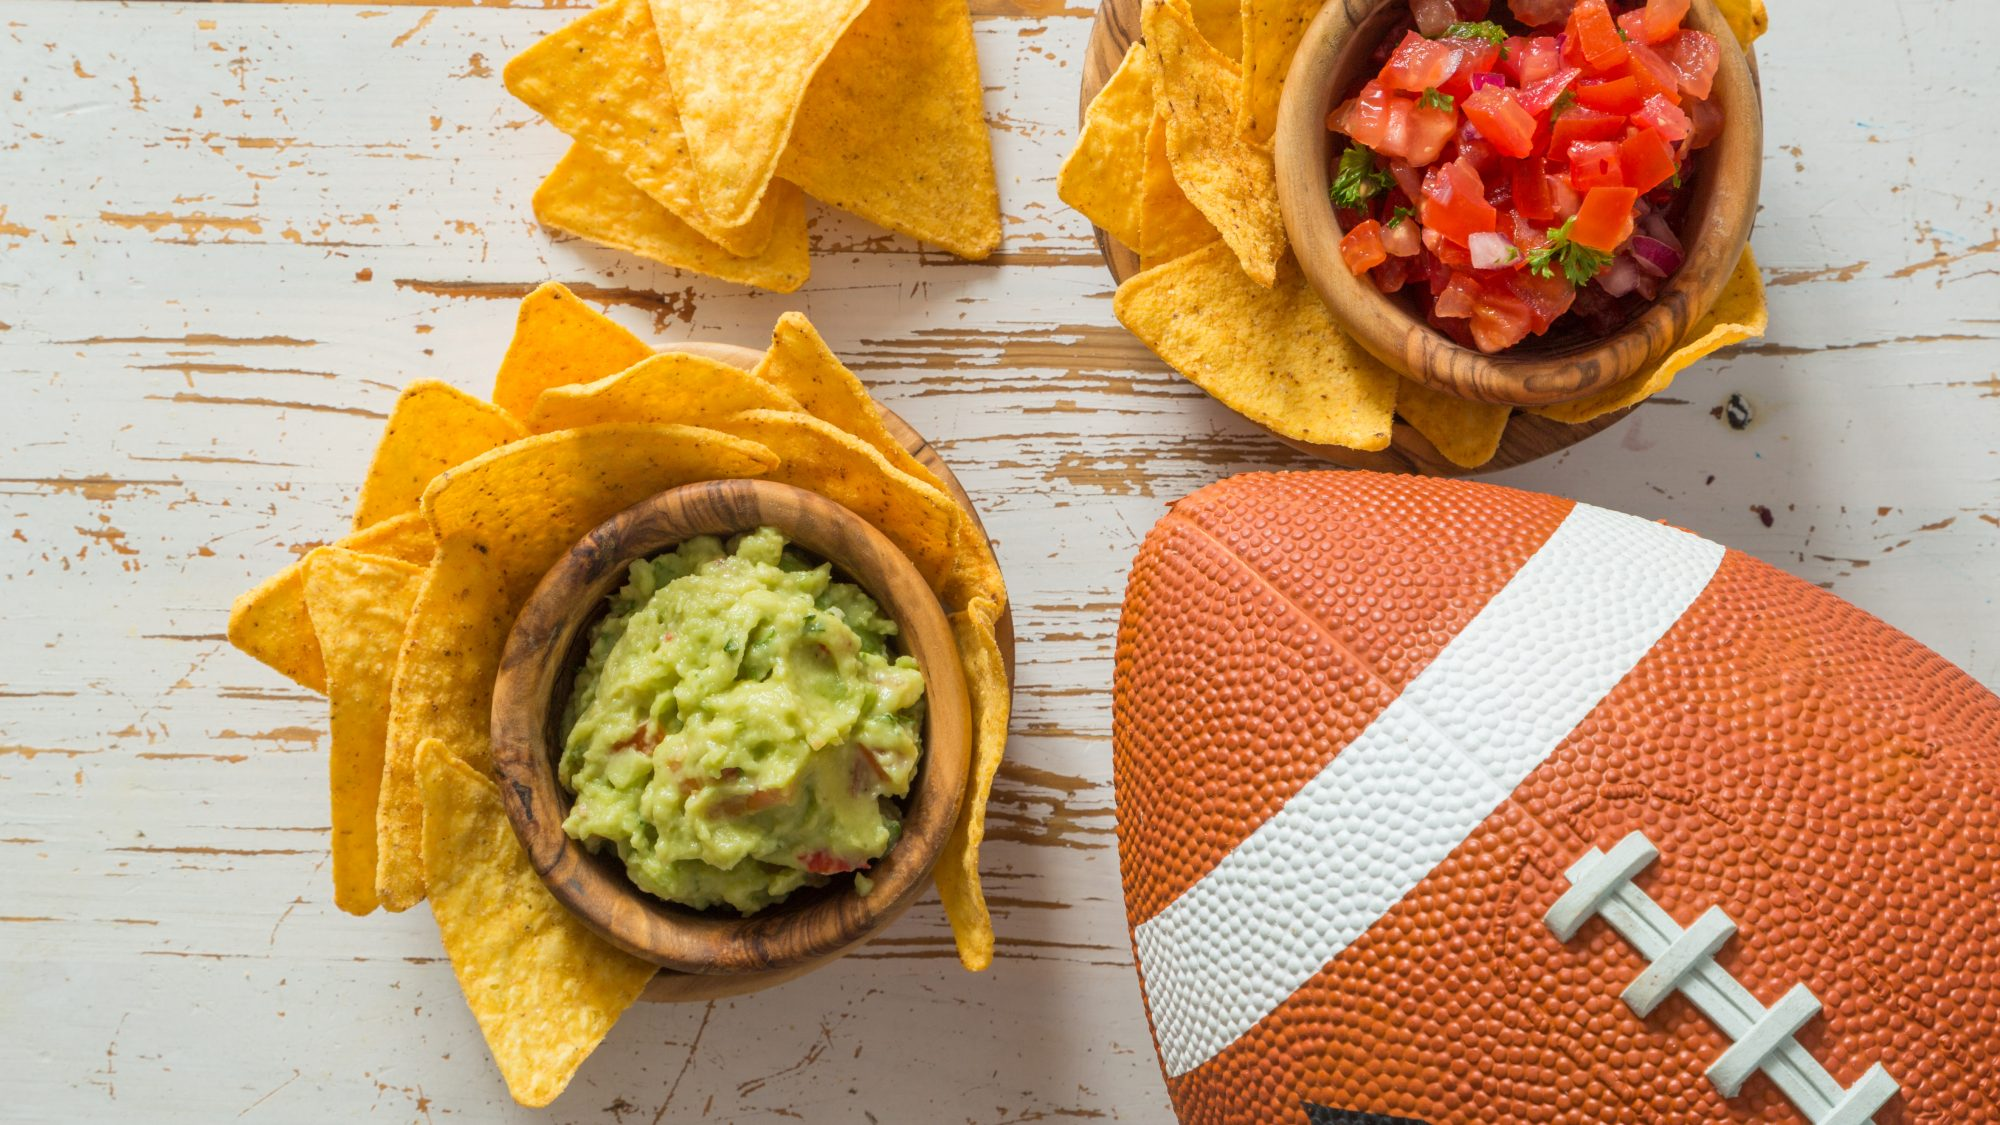 how-to-host-superbowl-outdoors: football, guacamole, salsa